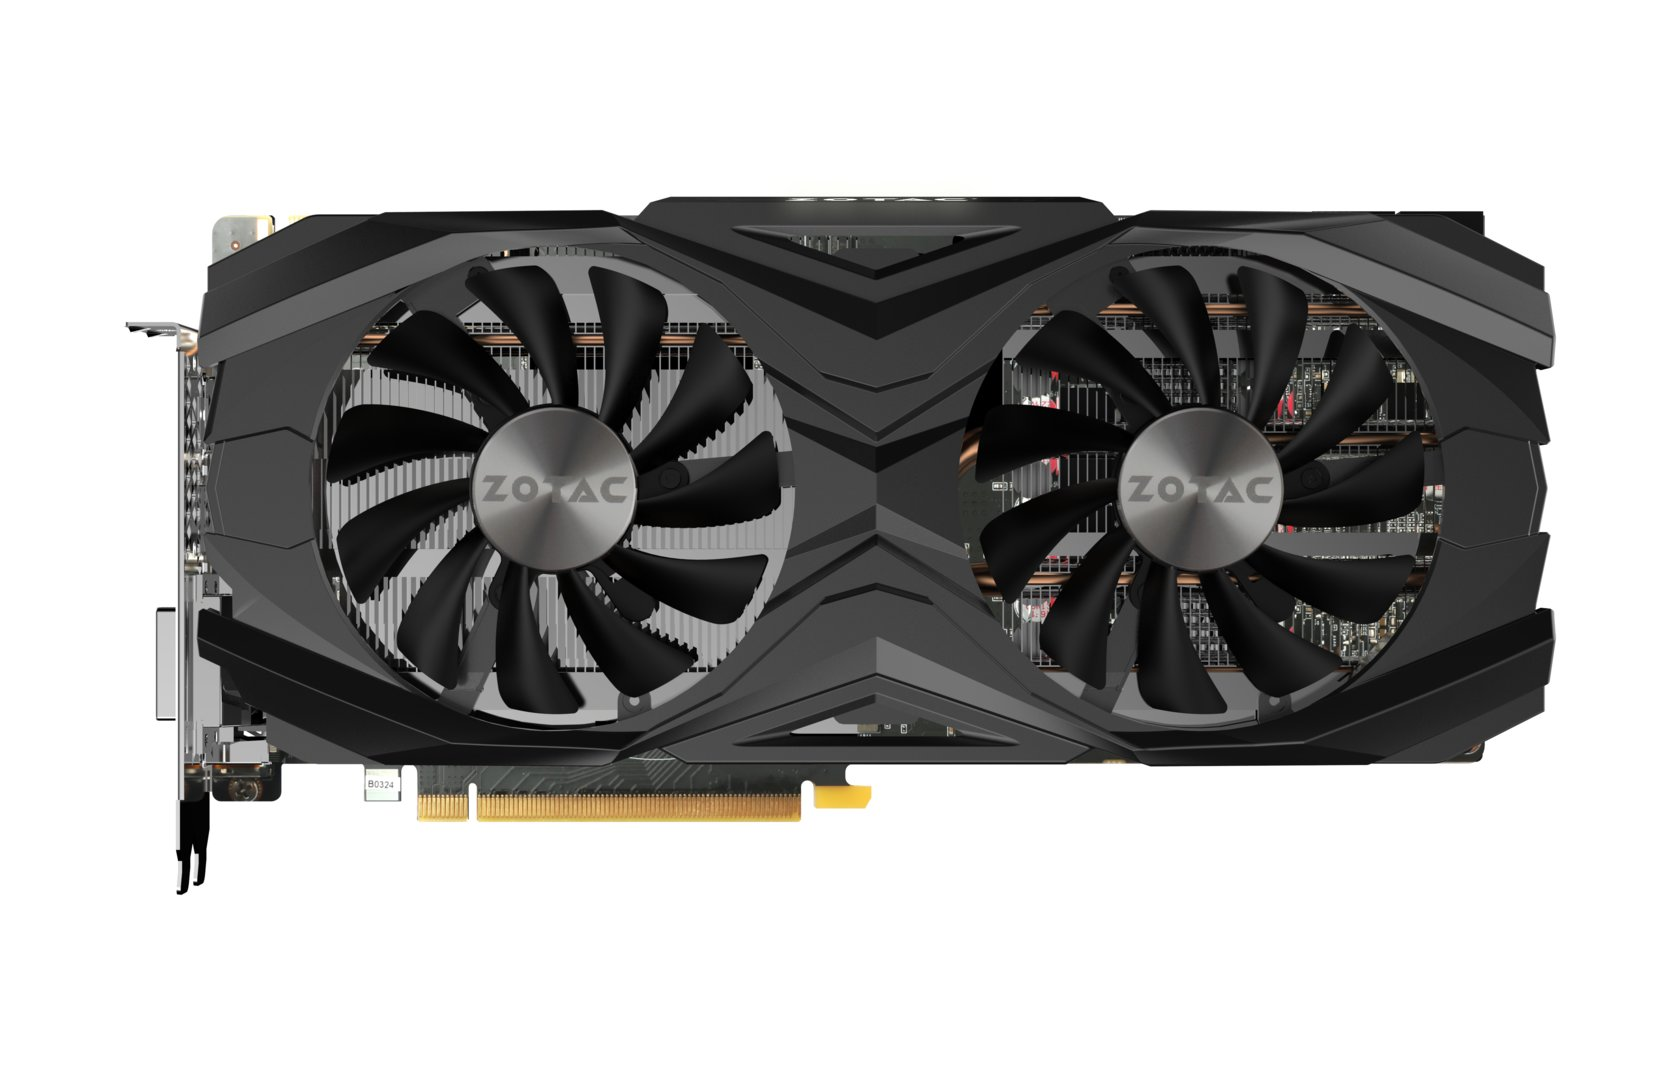 Zotac GeForce GTX 1080 Ti AMP! Edition